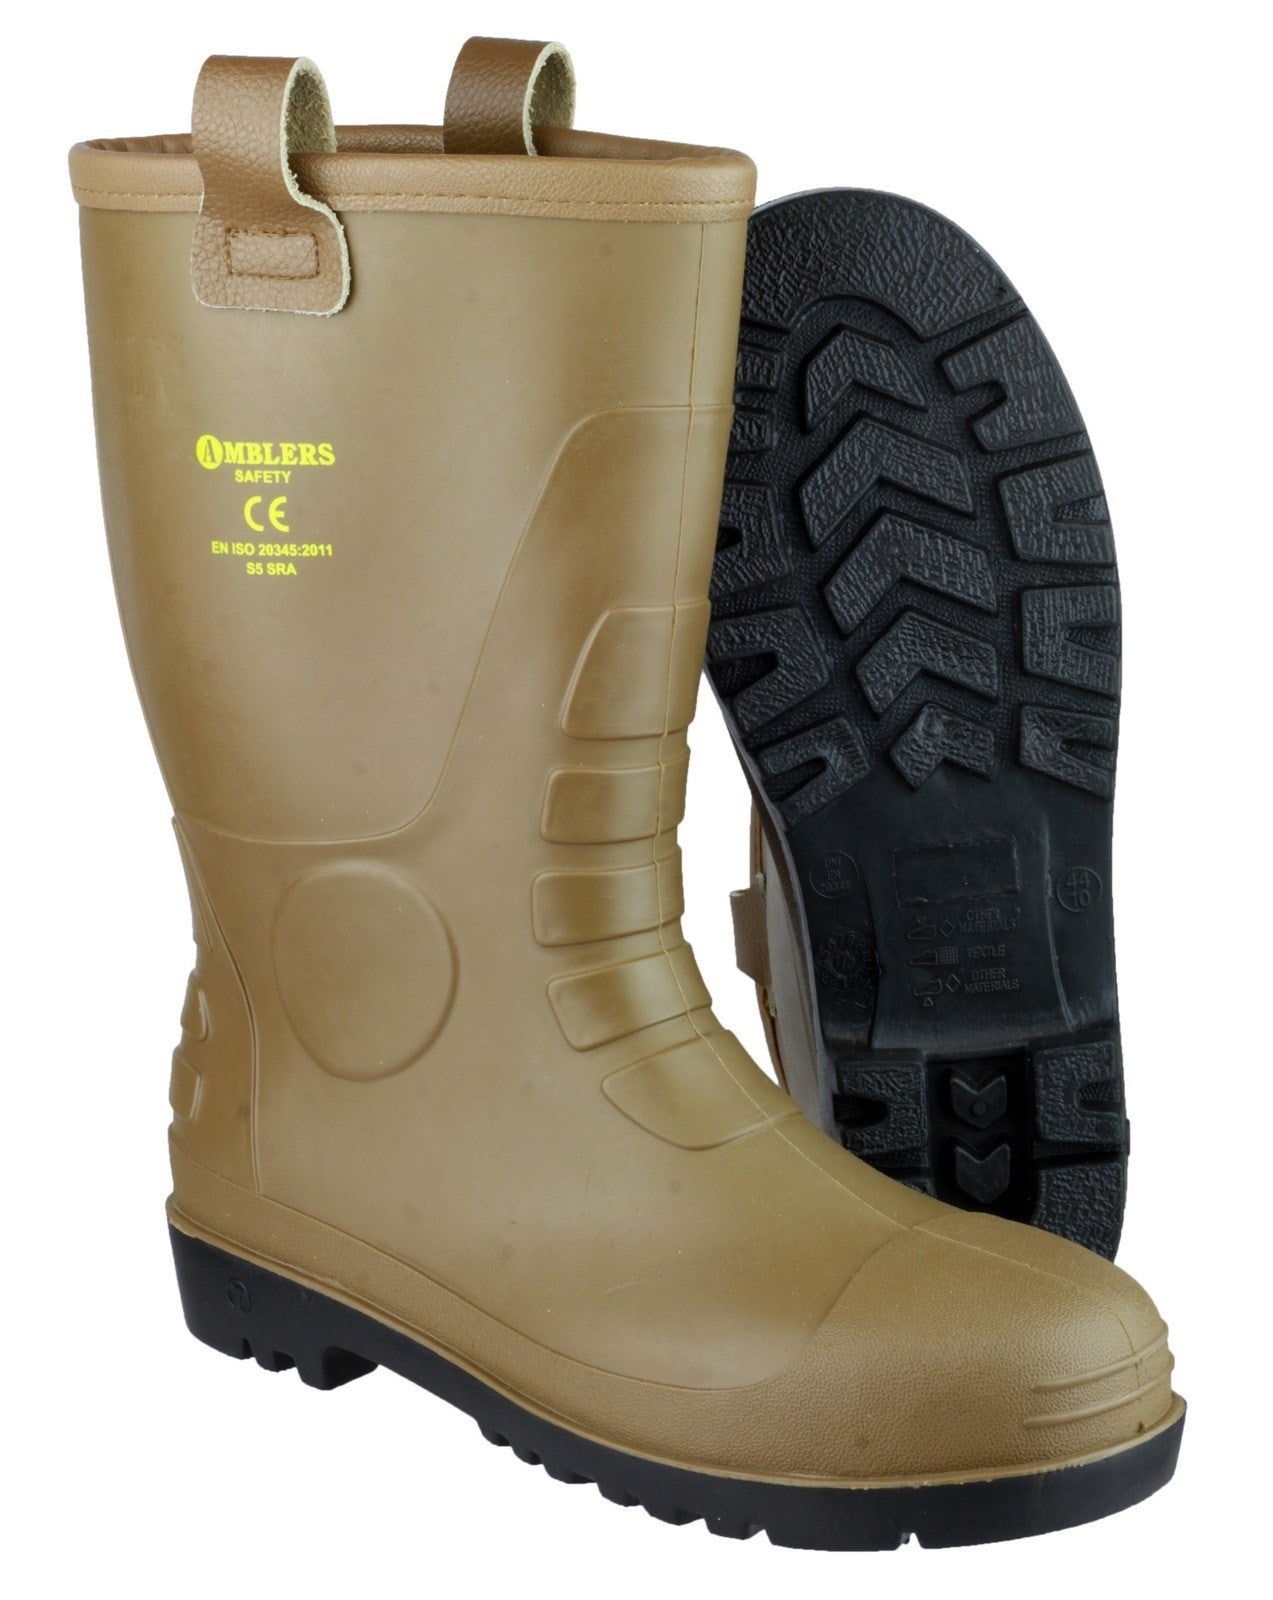 FS95 Waterproof PVC Pull on Safety Rigger Boot